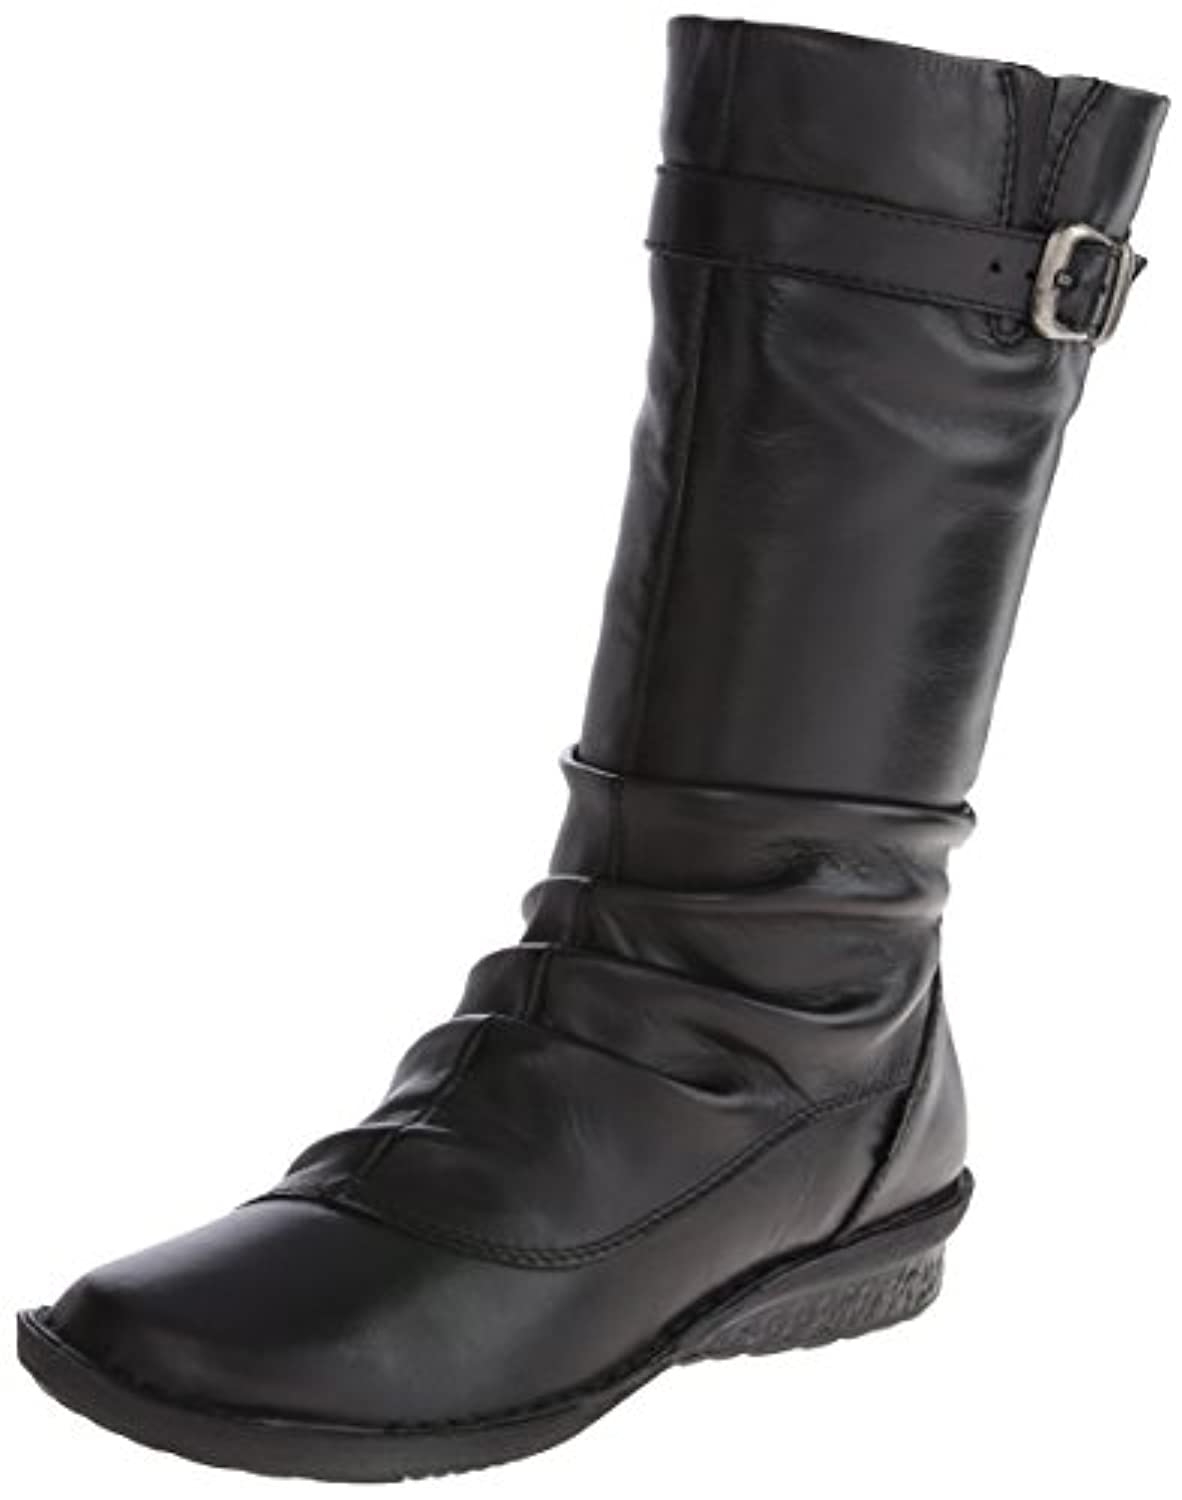 Napa Flex Women's SALINA Black Boot 36 M EU, 5.5-6 M